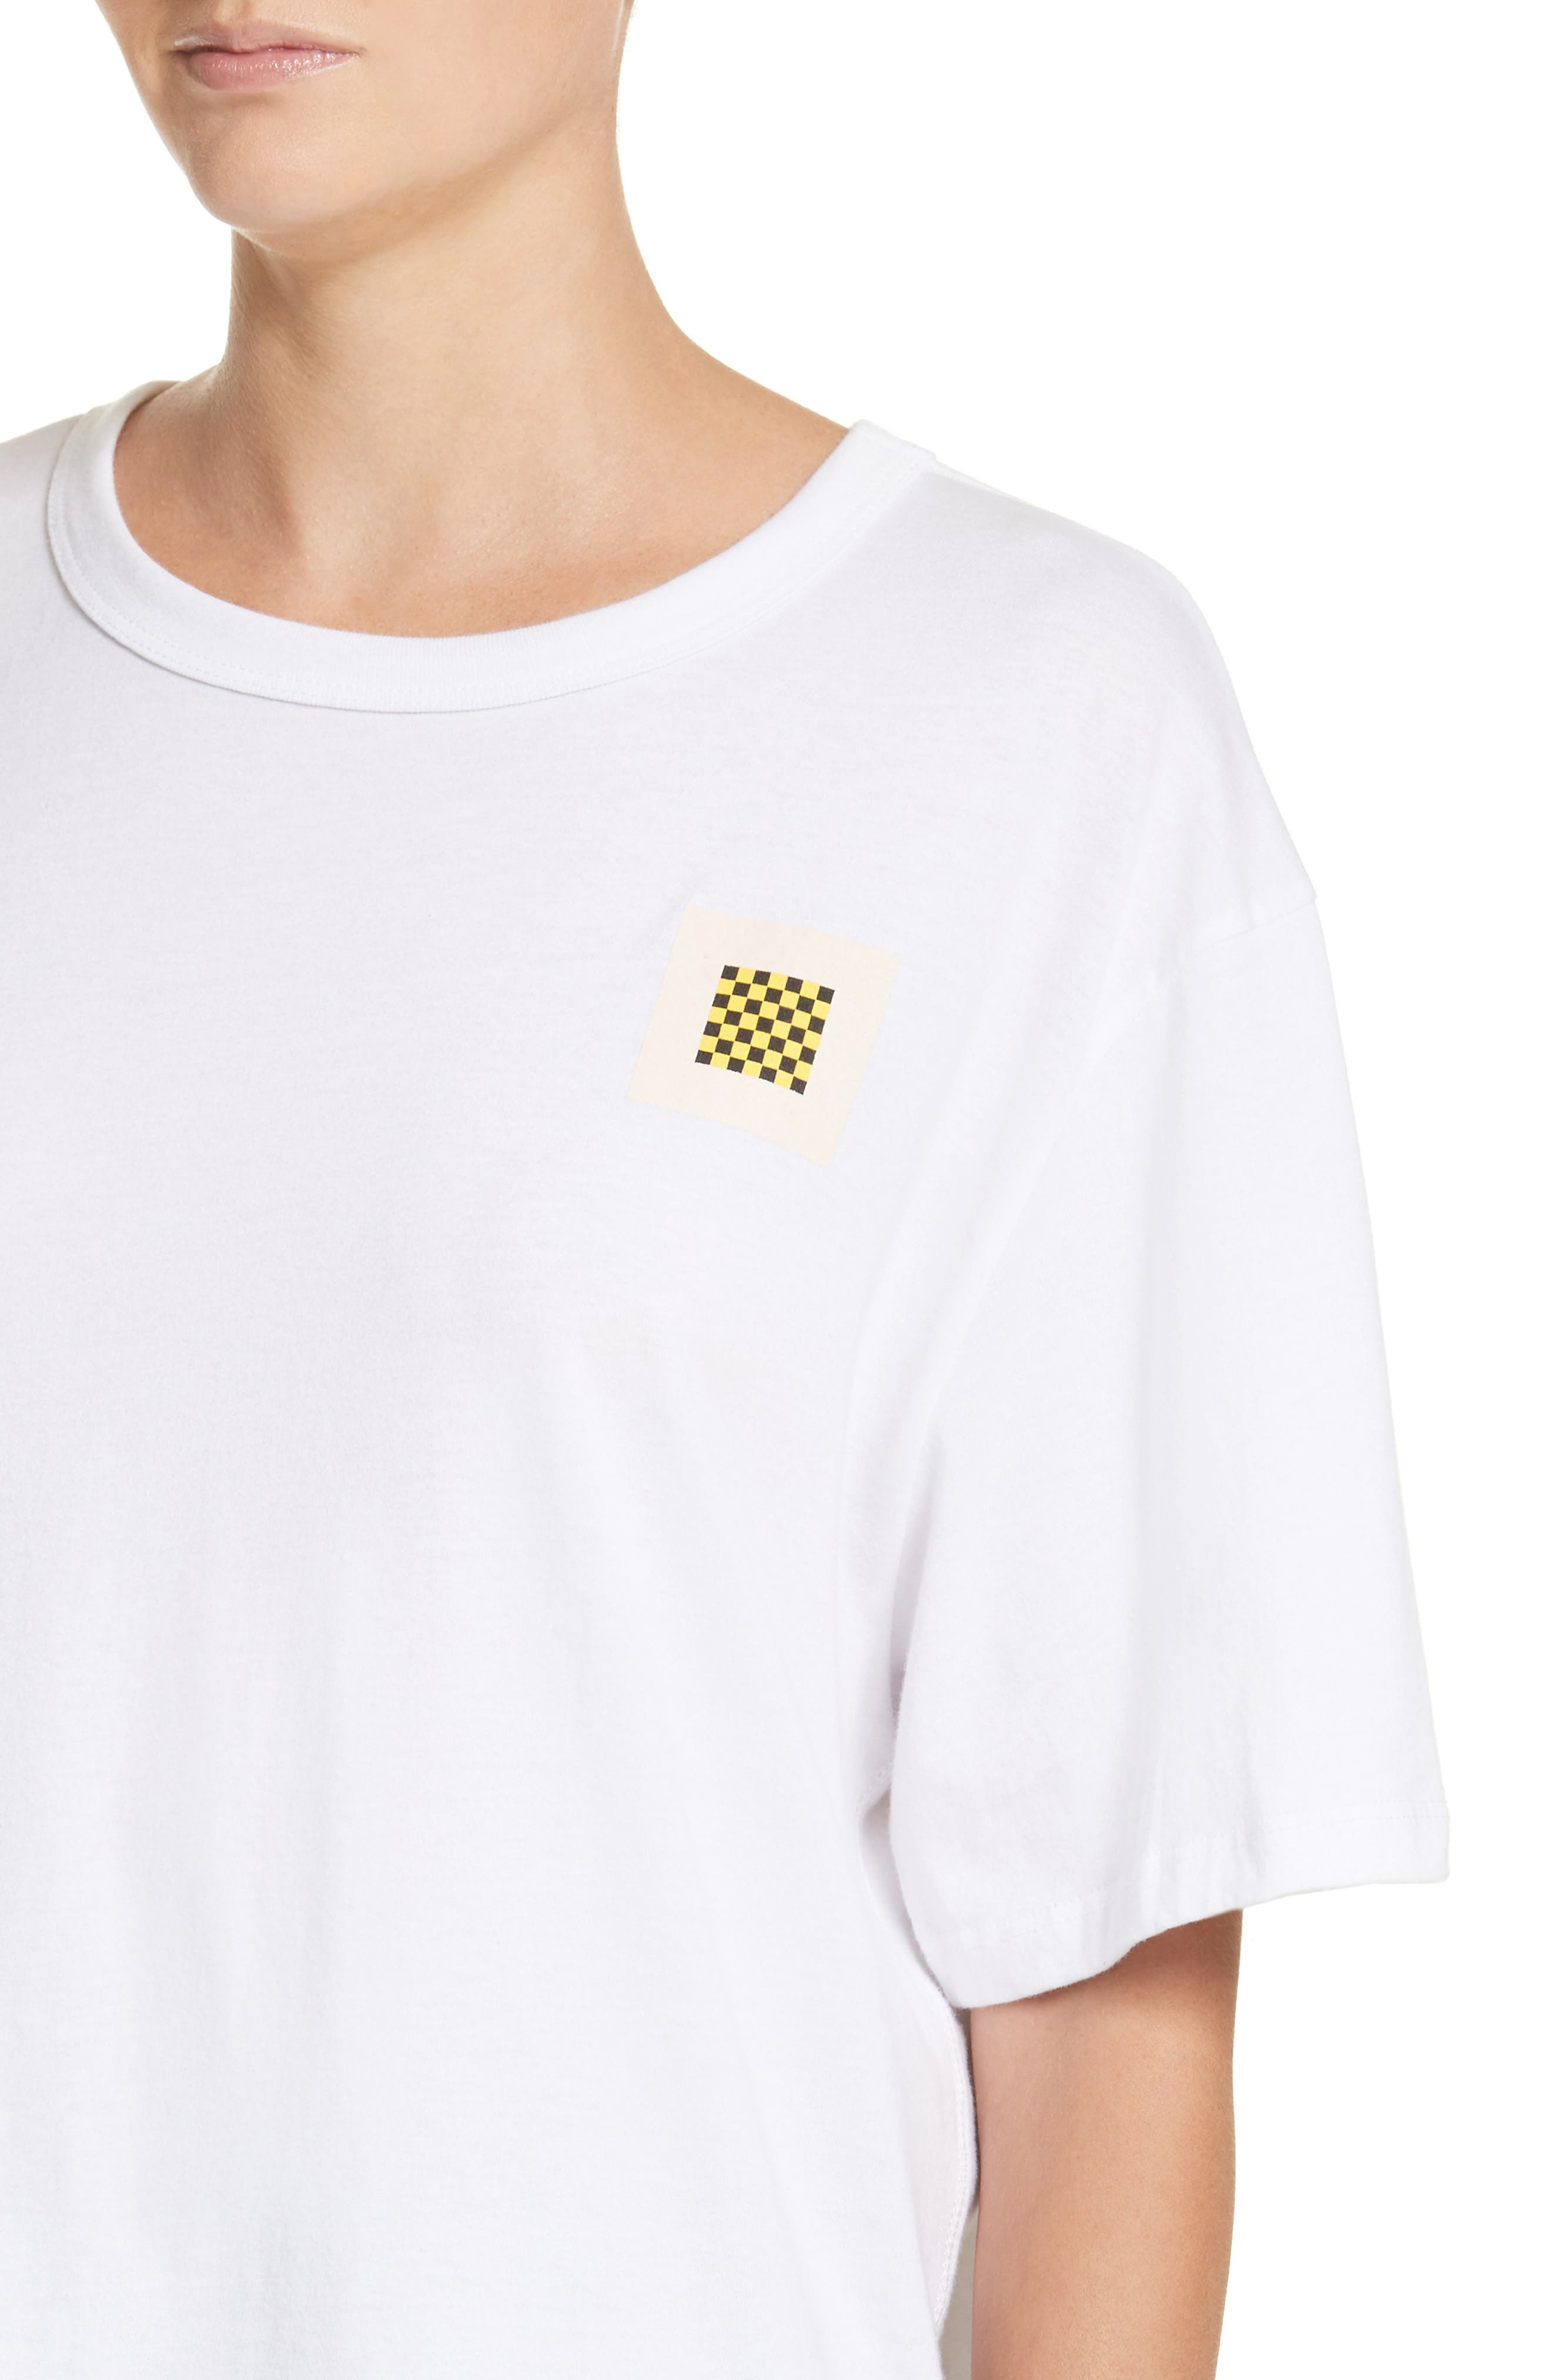 PSWL Graphic Jersey Tee,                             Alternate thumbnail 10, color,